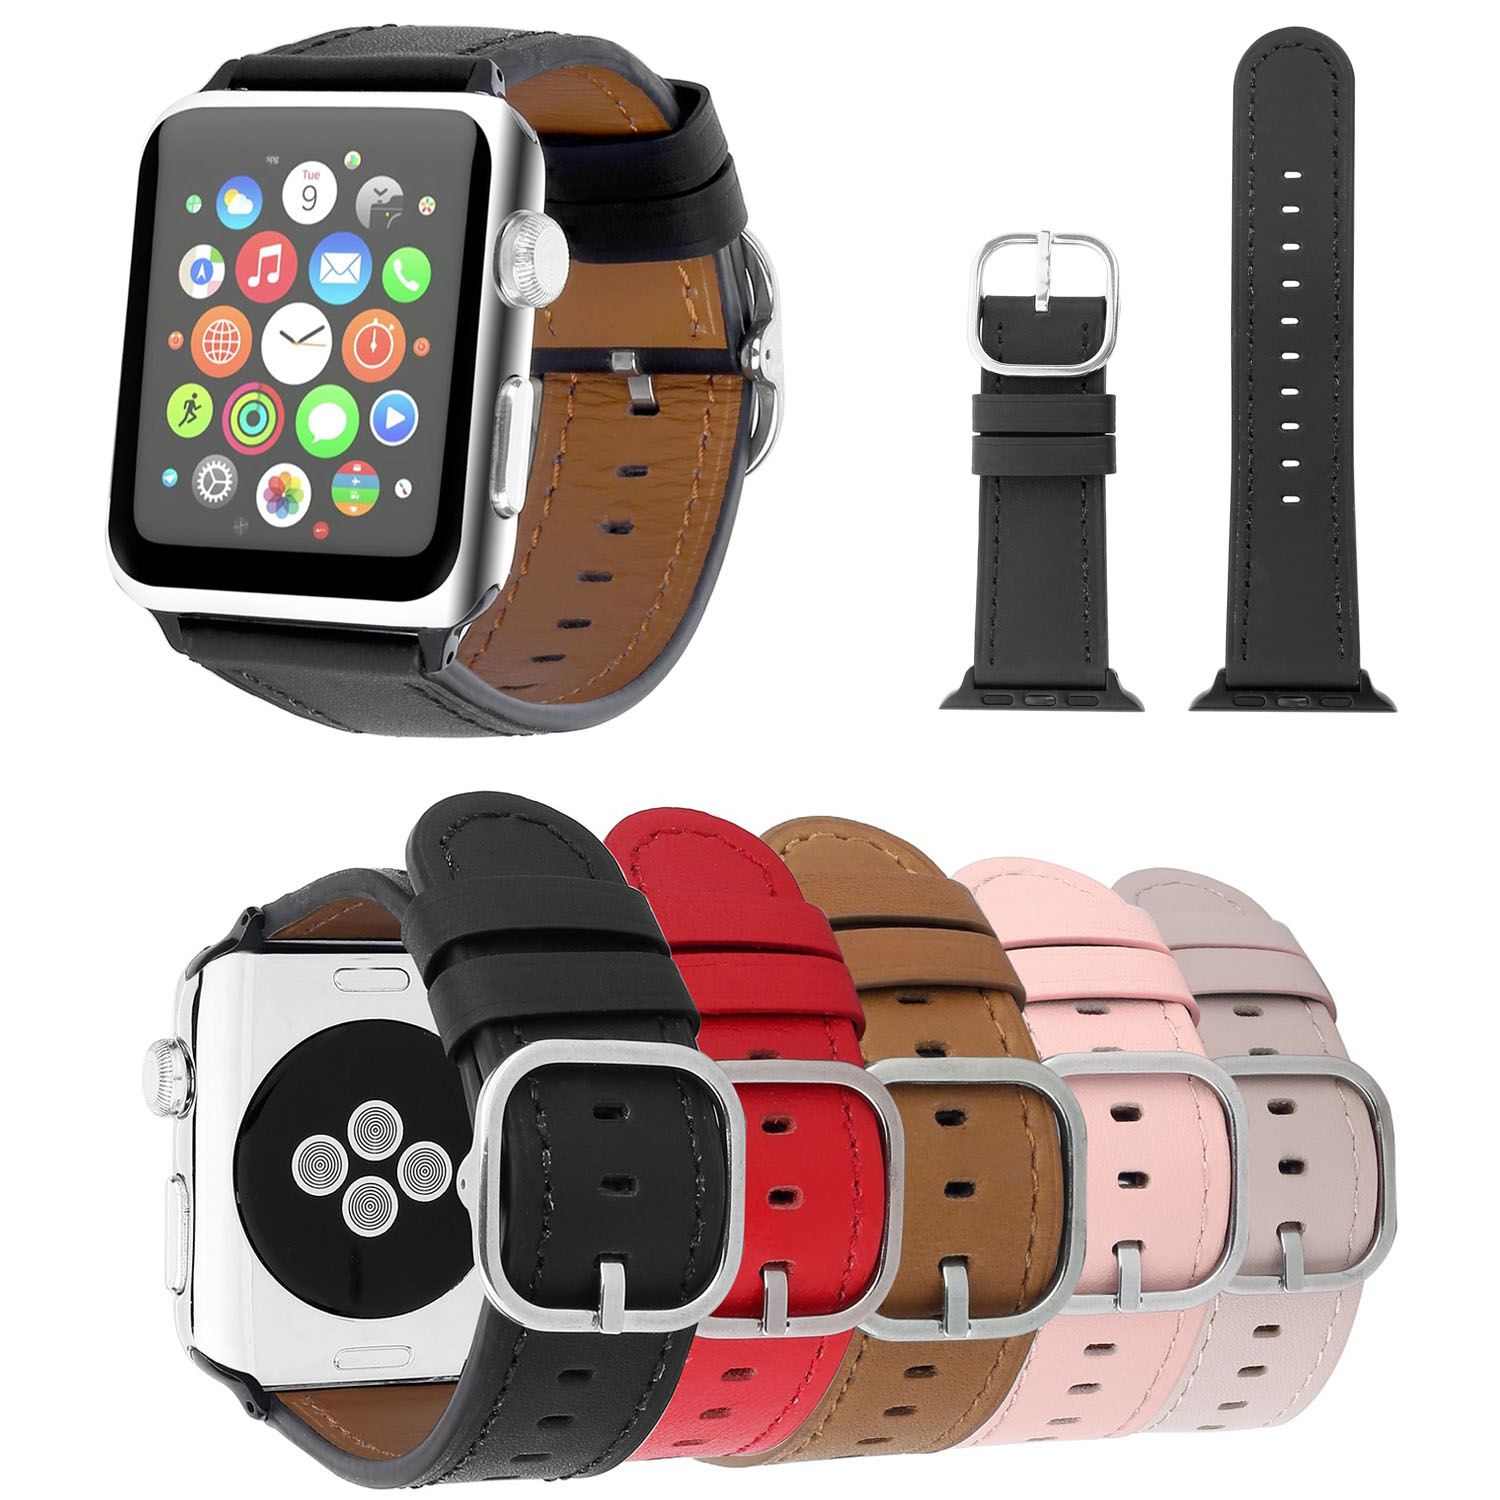 For Apple Watch Series 3 Genuine Leather Band Classic Buckle Strap for iWatch Series 1/2 38mm 42mm Bracelet Wristband wristband silicone bands for apple watch 42mm sport strap replacement for iwatch band 38mm classic stainless steel buckle clock